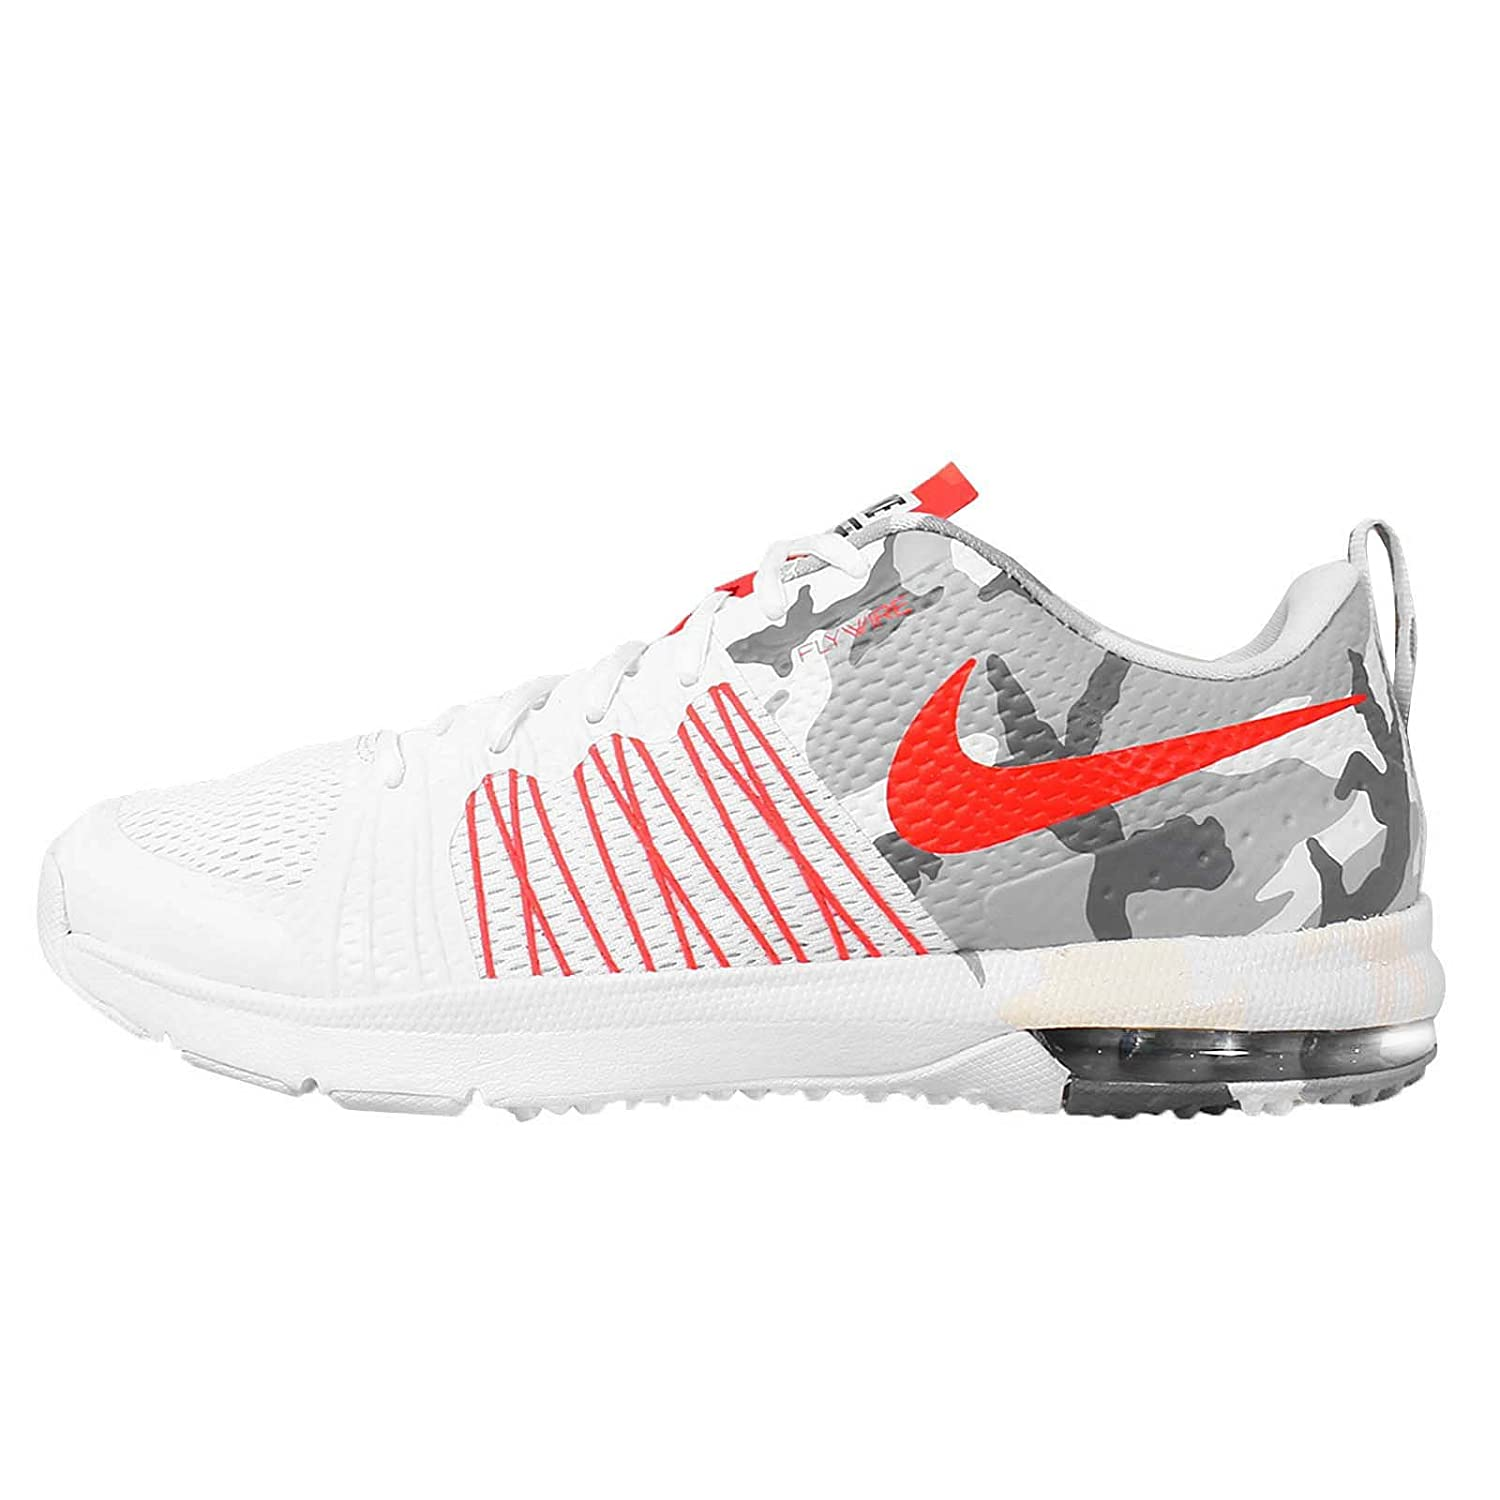 competitive price d2fb2 34fd5 Nike Men s Air Max Effort TR AMP, White Bright Crimson-Black (CAMO), 9 M  US  Amazon.co.uk  Shoes   Bags